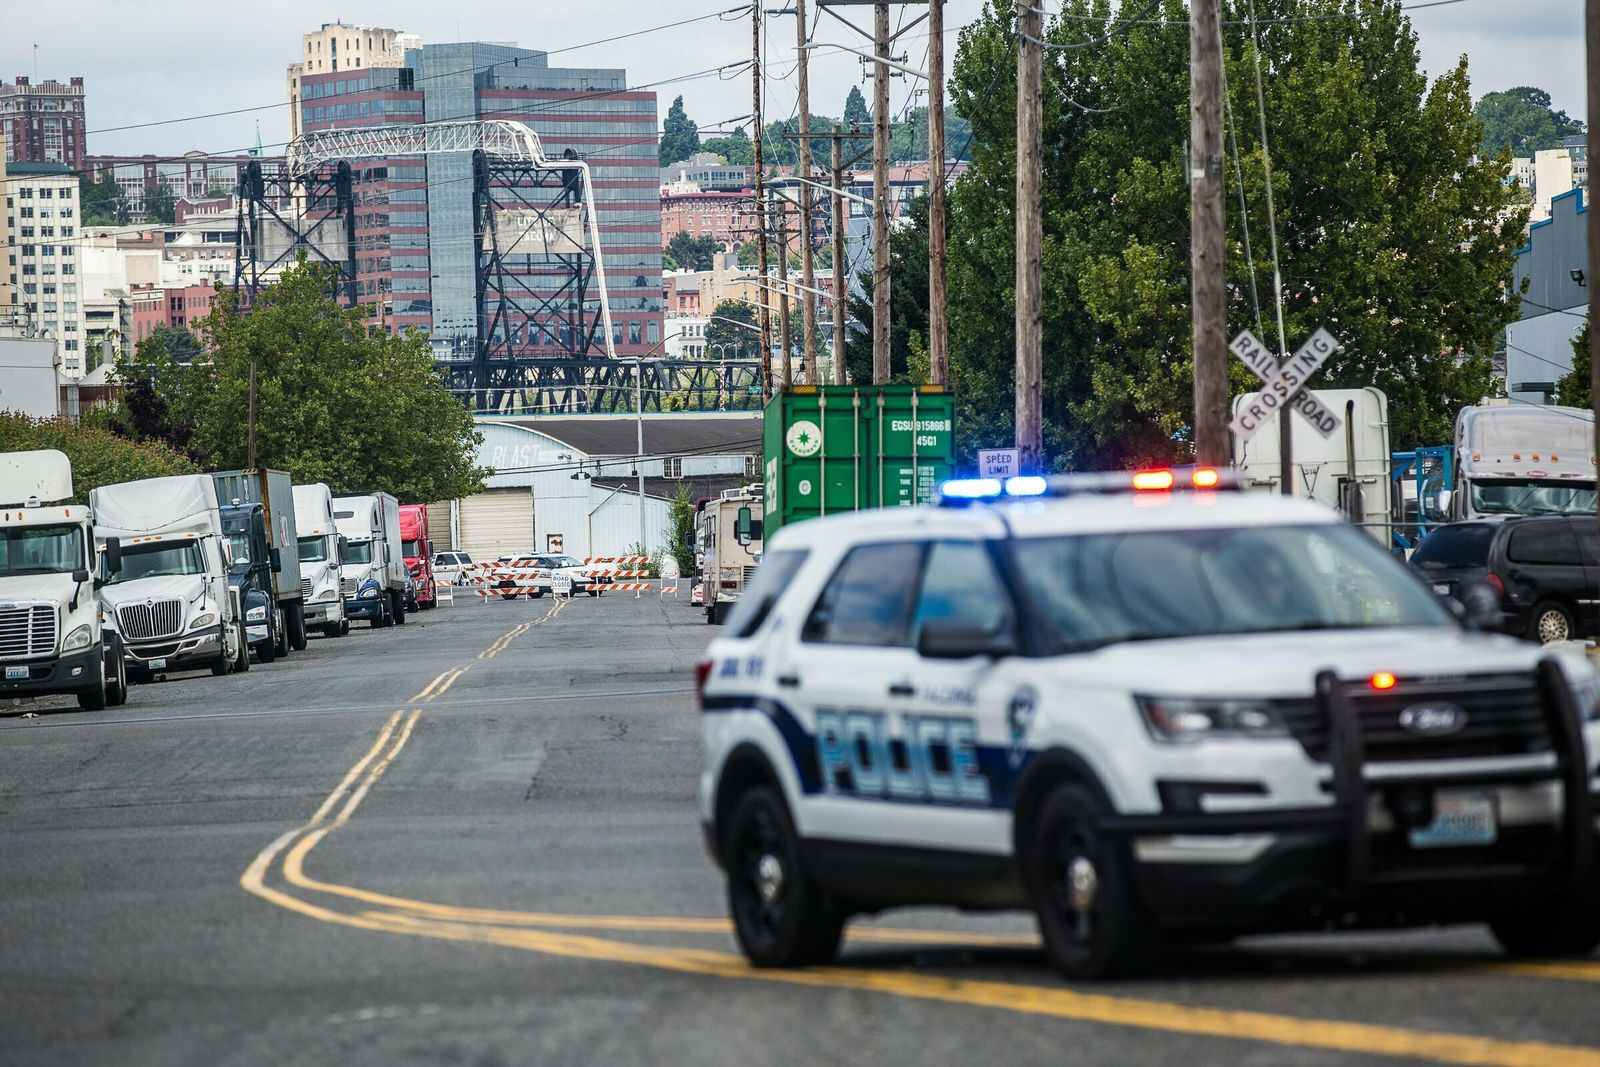 A police officer guards the front of a road block near the Northwest Detention Center, Saturday, July 13, 2019 in Tacoma, Wash. (Rebekah Welch/The Seattle Times via AP)